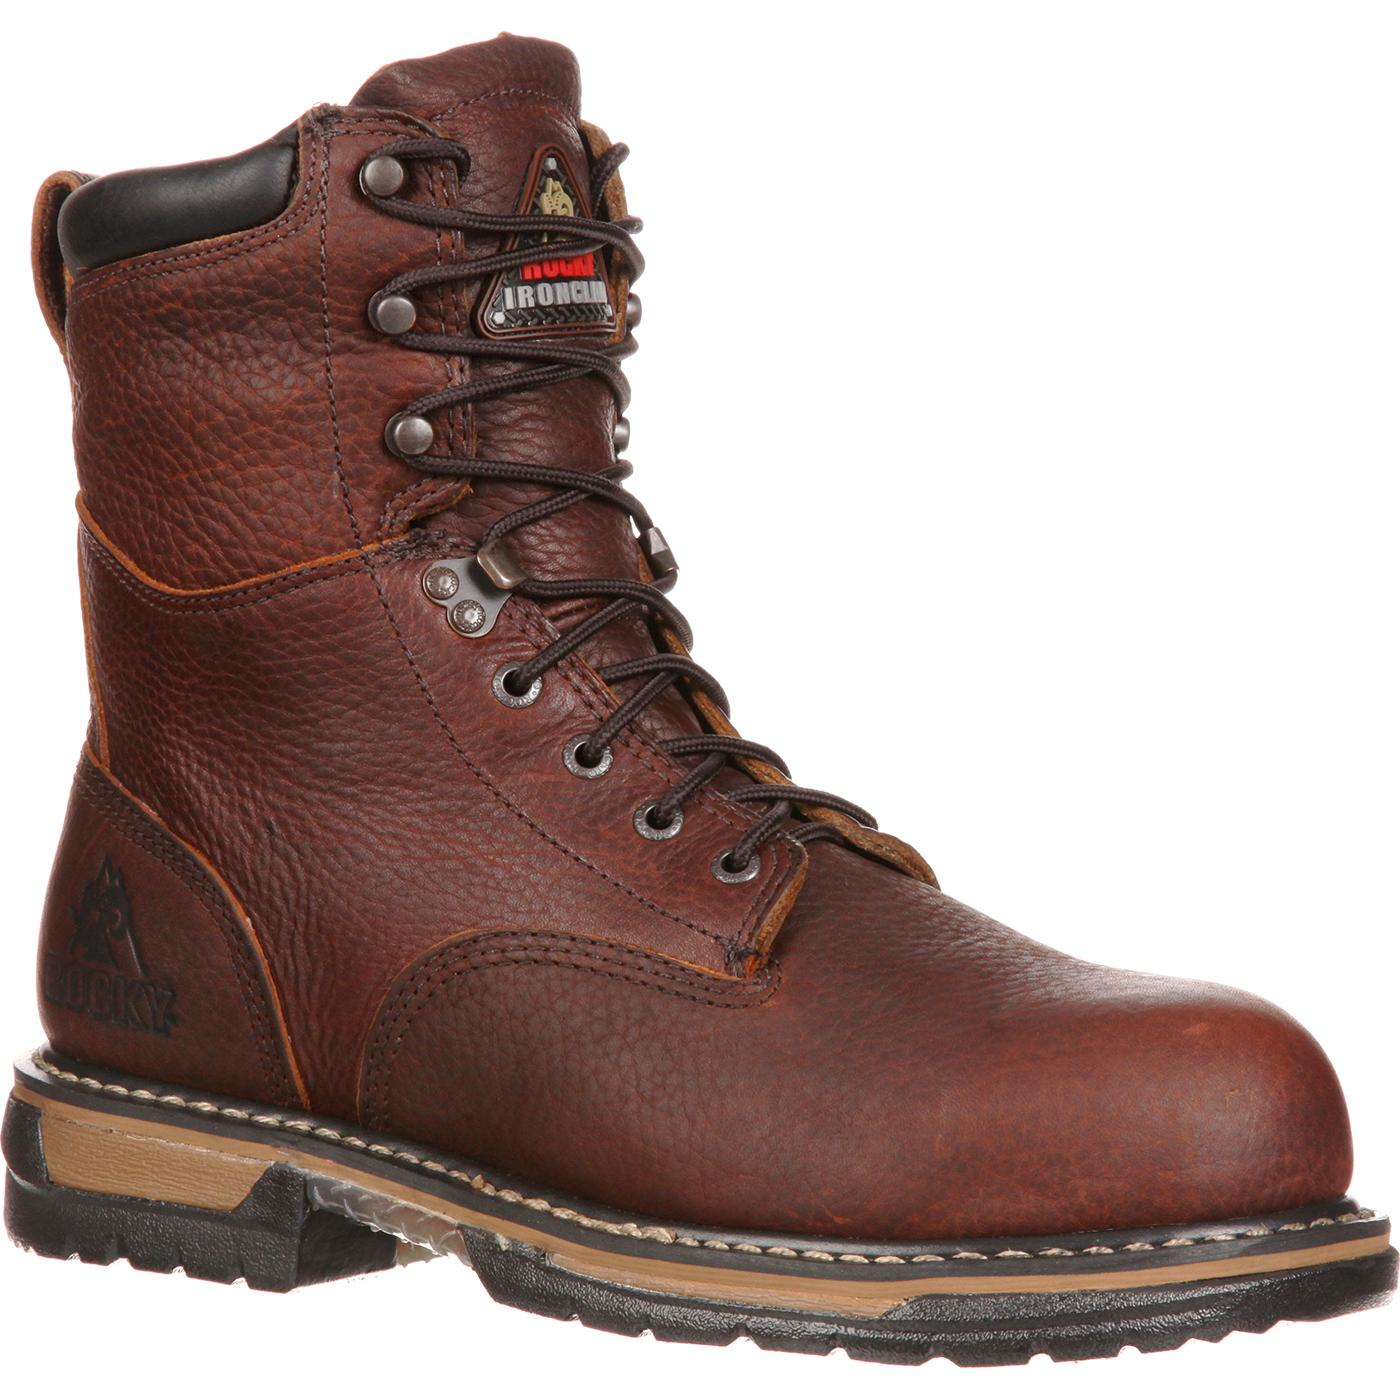 Insulated Steel Toe Work Boots yytpEuLL